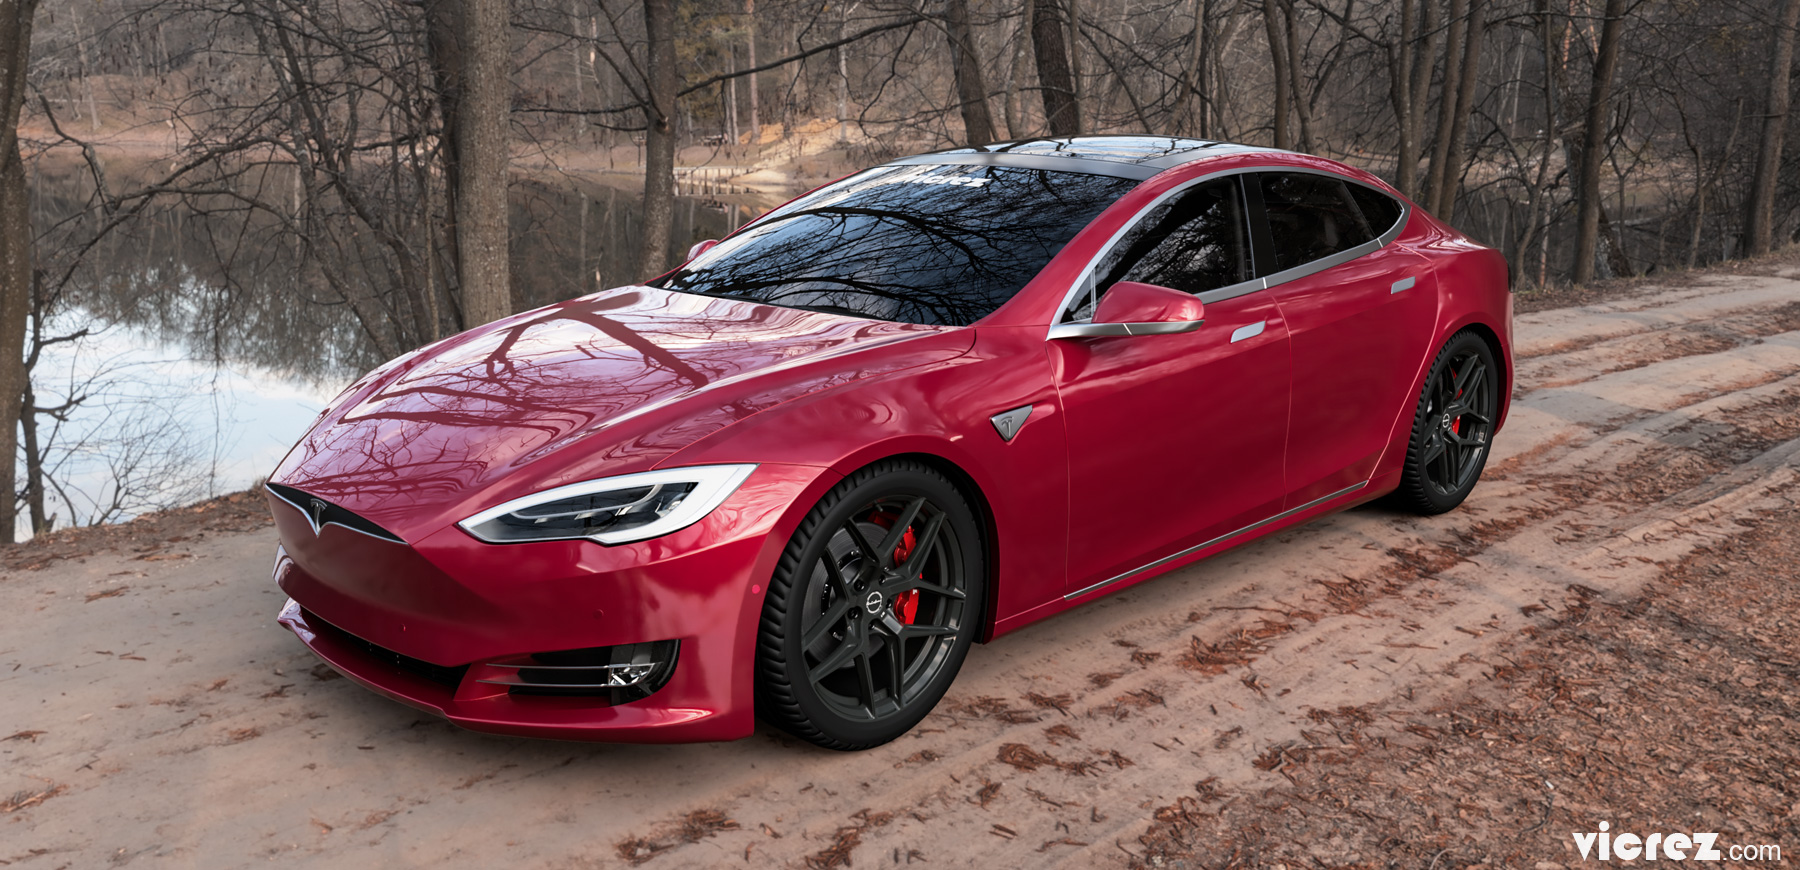 Red Tesla Model S x Brixton Forged RF7 (Finished in Satin Black) vzn100185